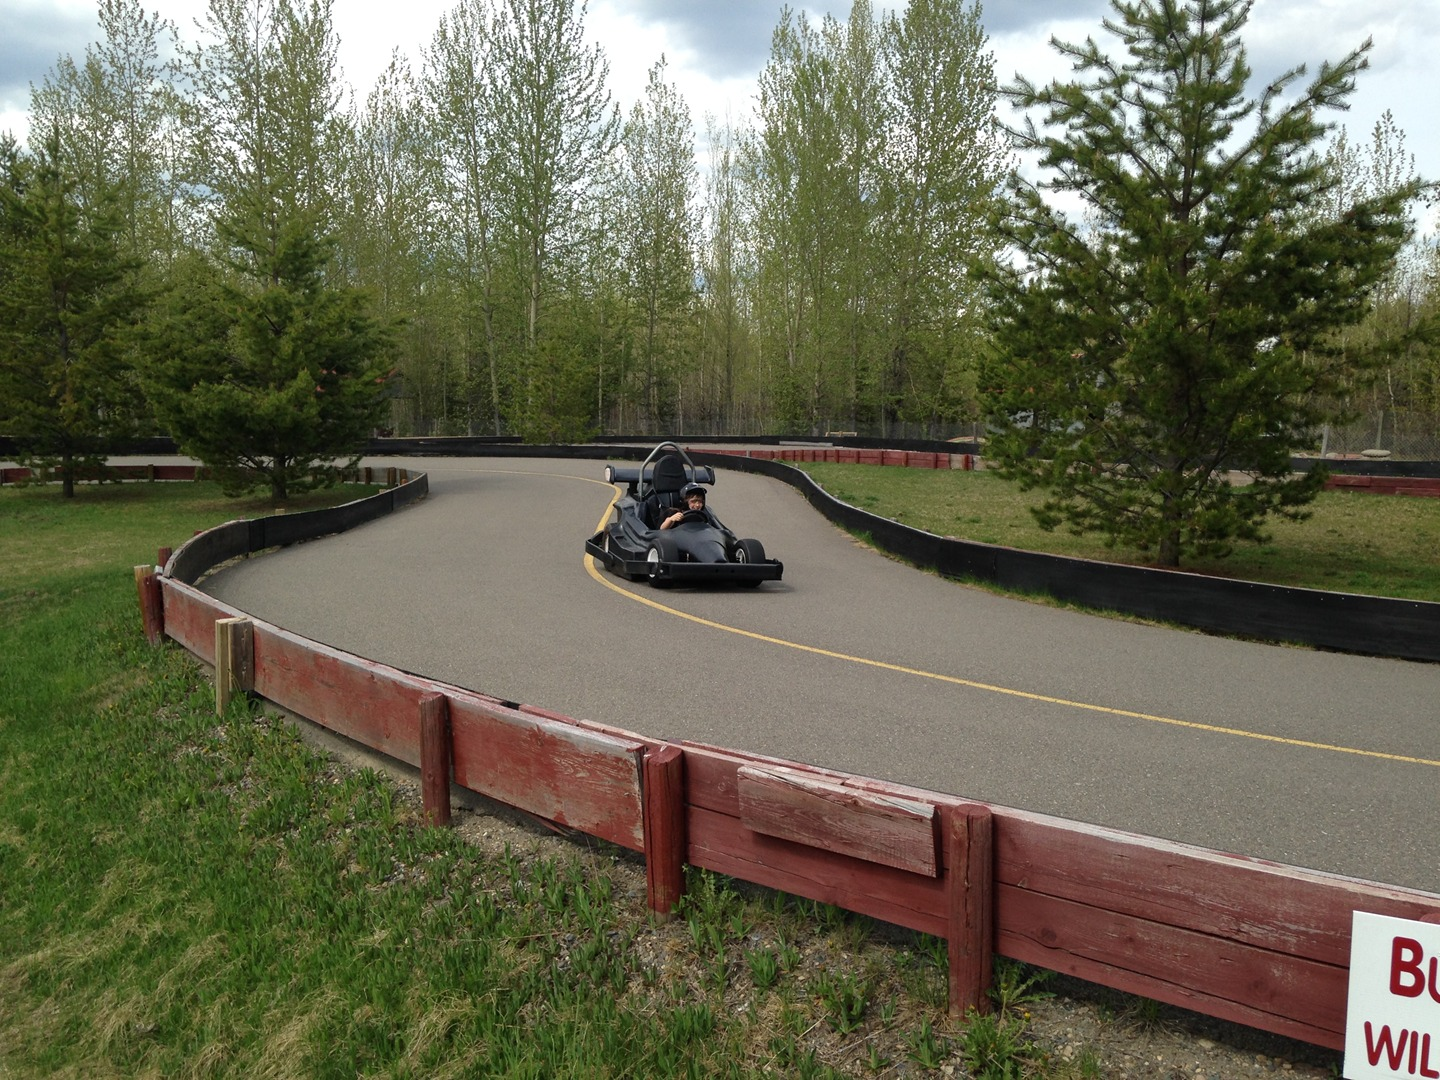 Prince George Go-Kart Racing